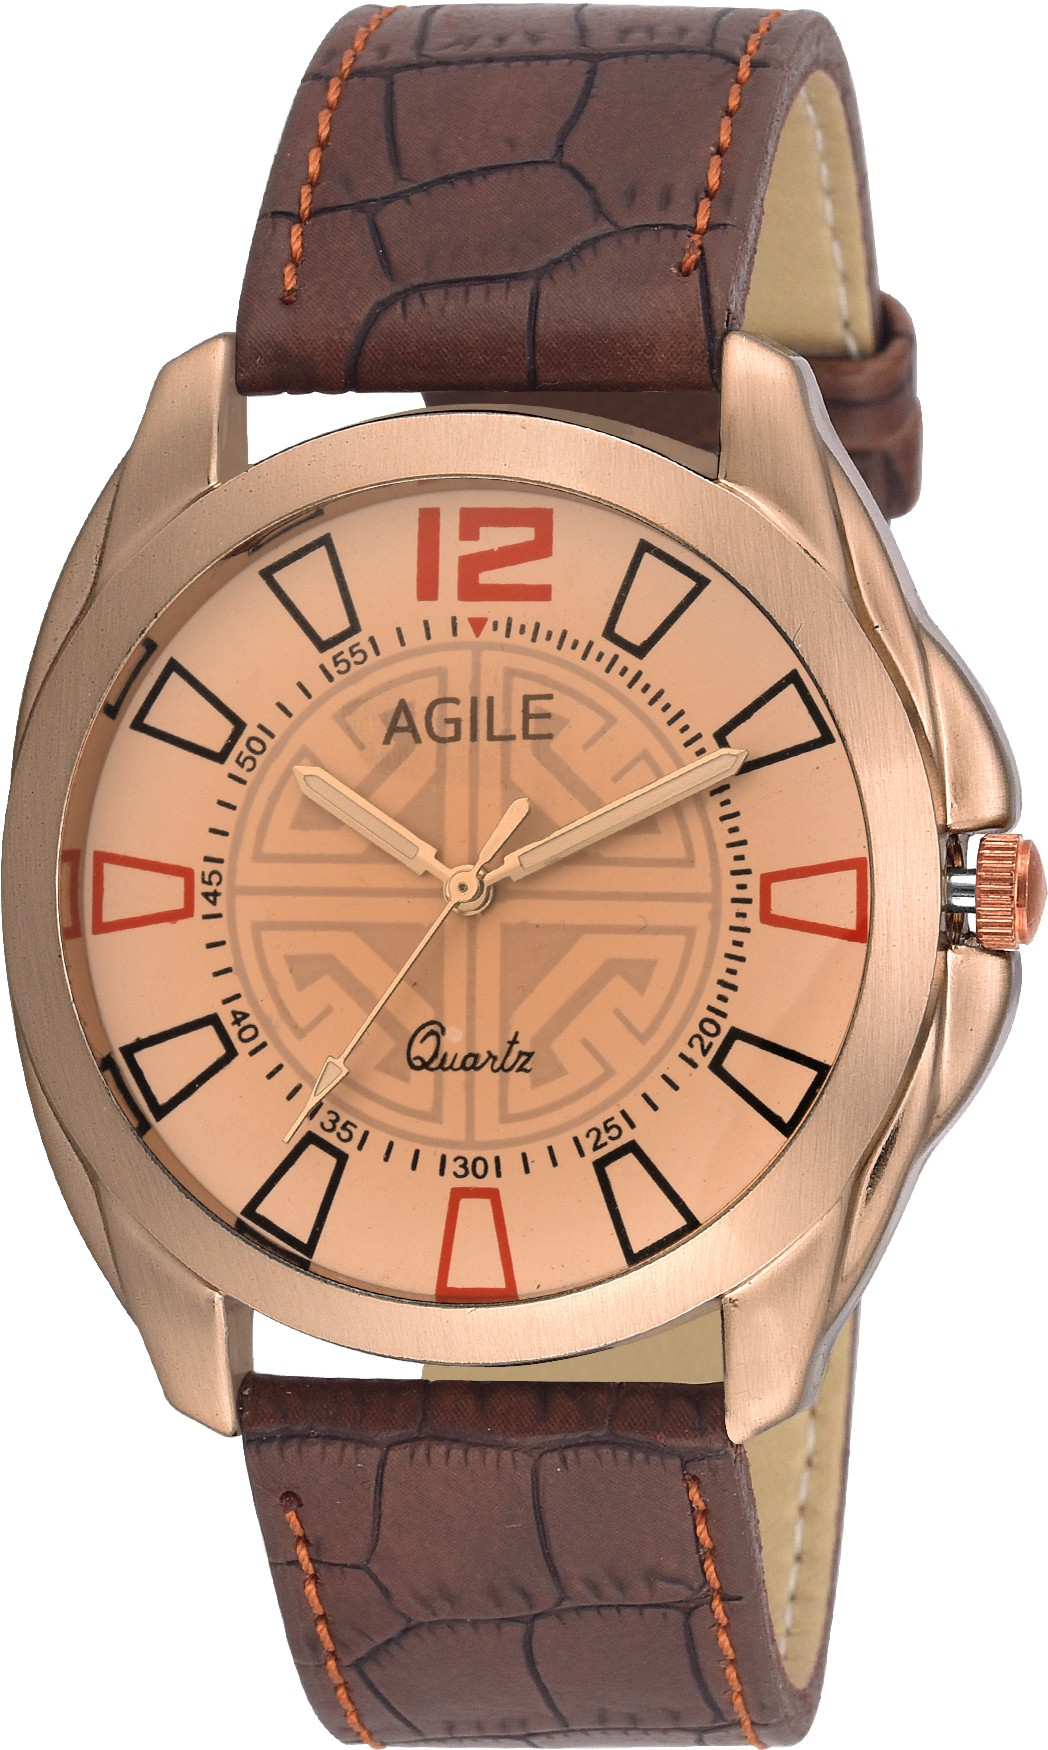 Flipkart - Watches Agile, FOGG & more